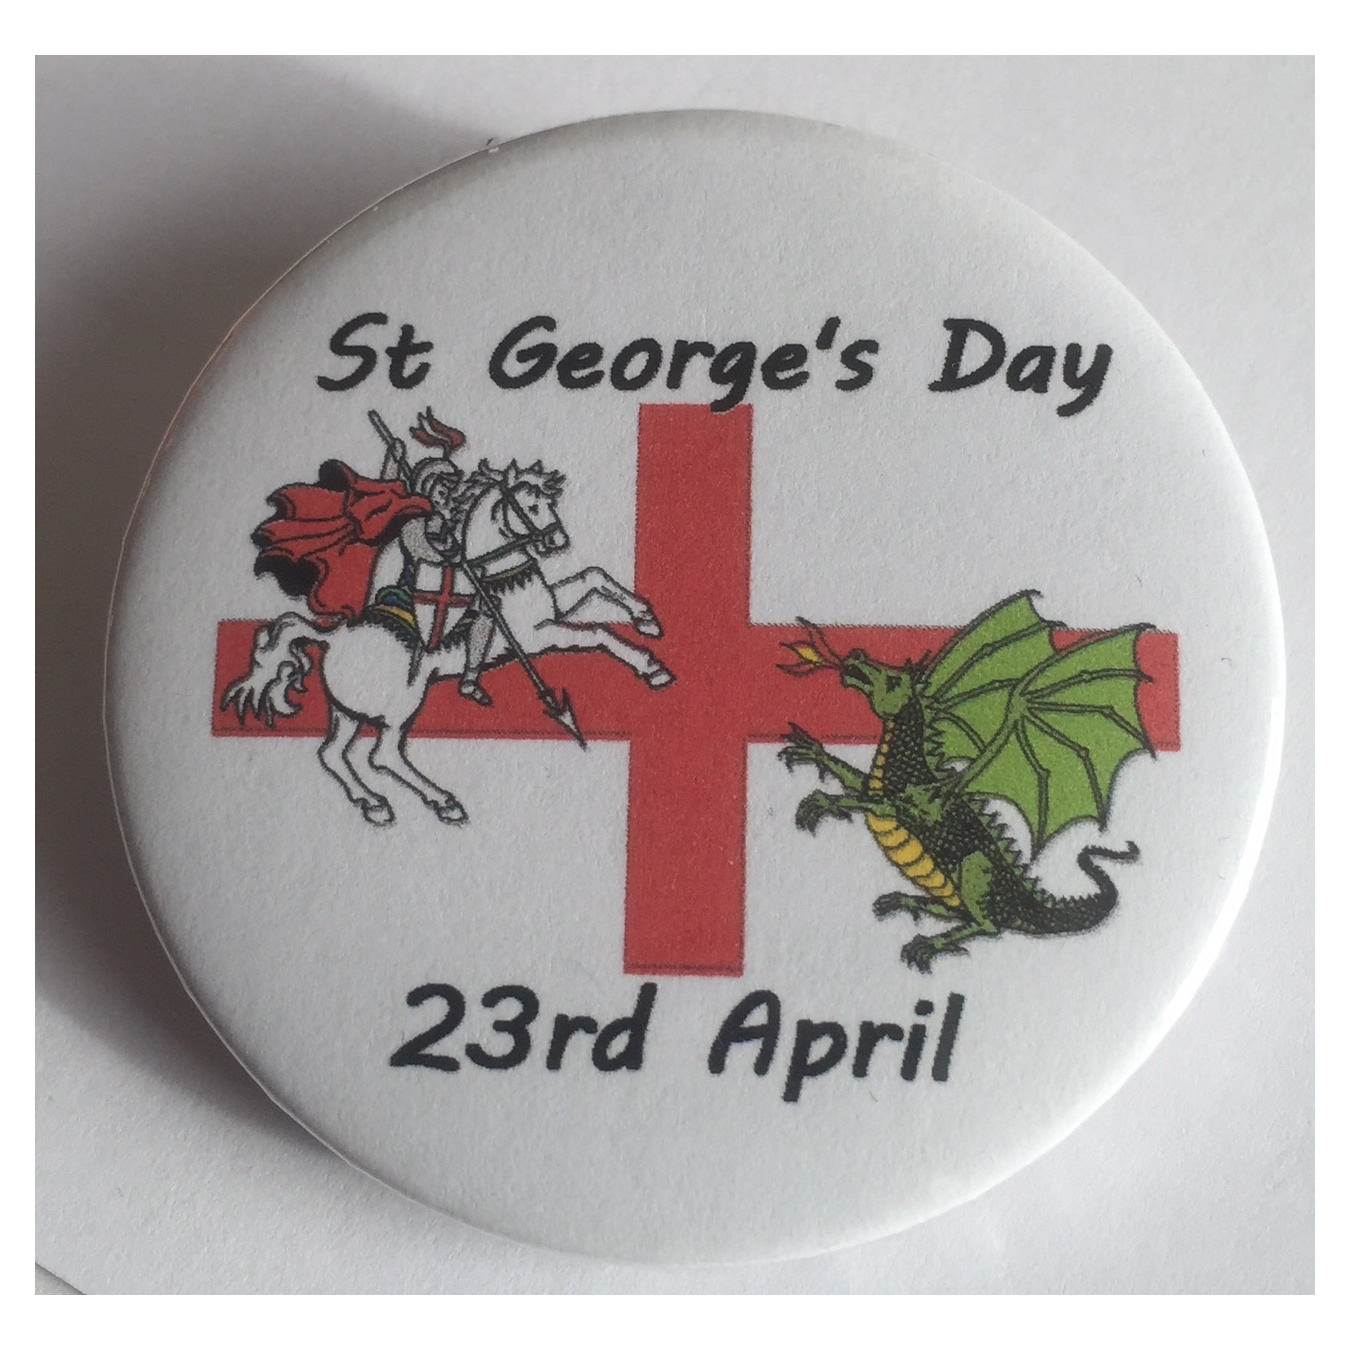 StGeorge's Day fridge magnet